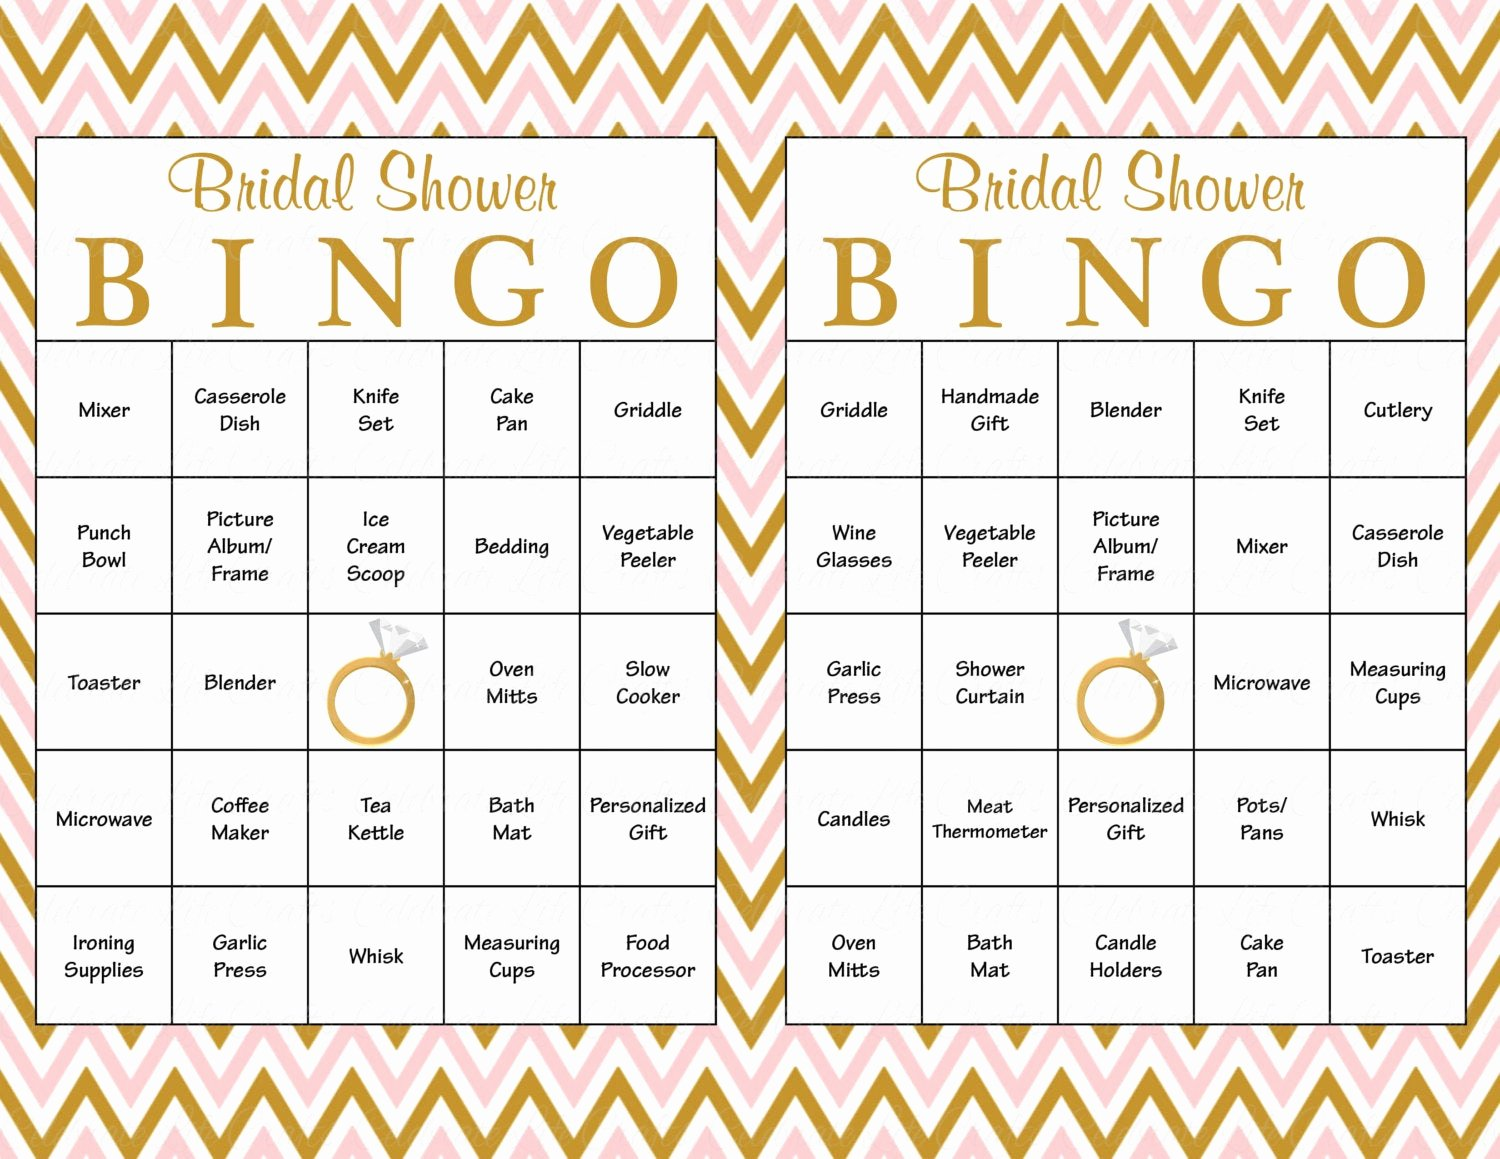 Bridal Bingo Template Awesome 60 Bridal Bingo Cards Blank & 60 Prefilled Cards Printable